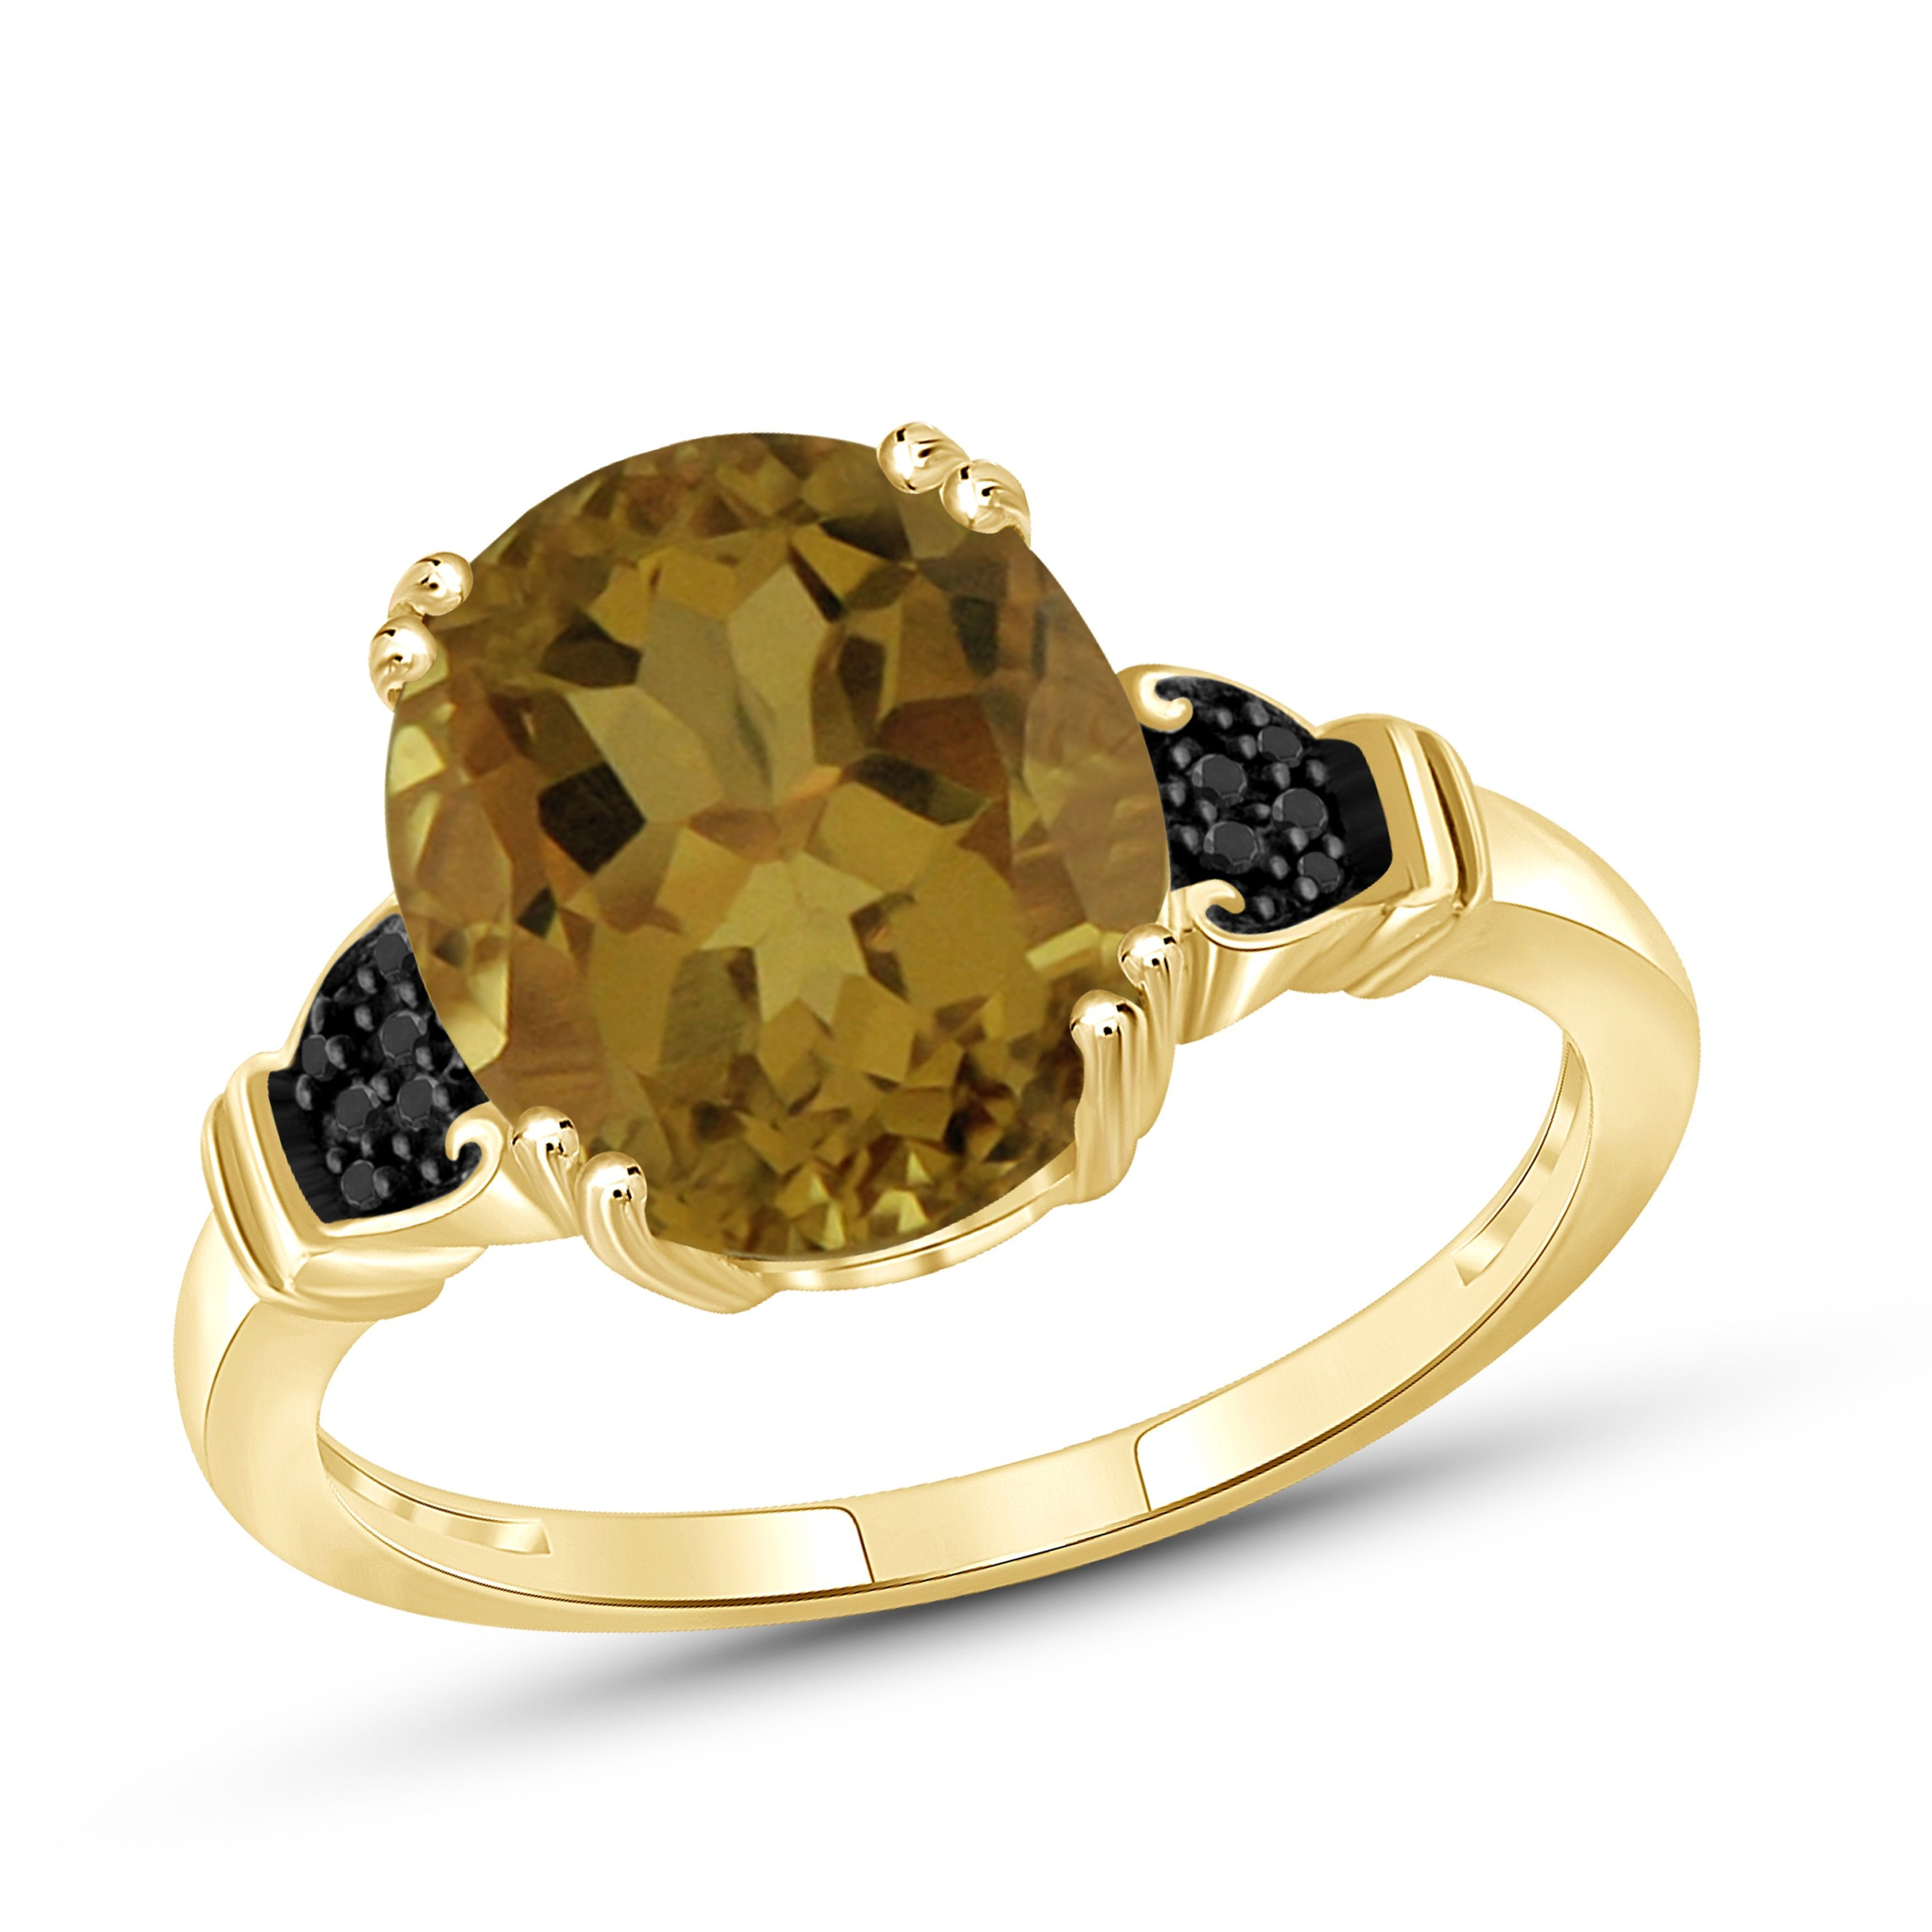 Jewelonfire Gold over Silver 1 1/2ct TW Whiskey and Black Diamond Accent Ring